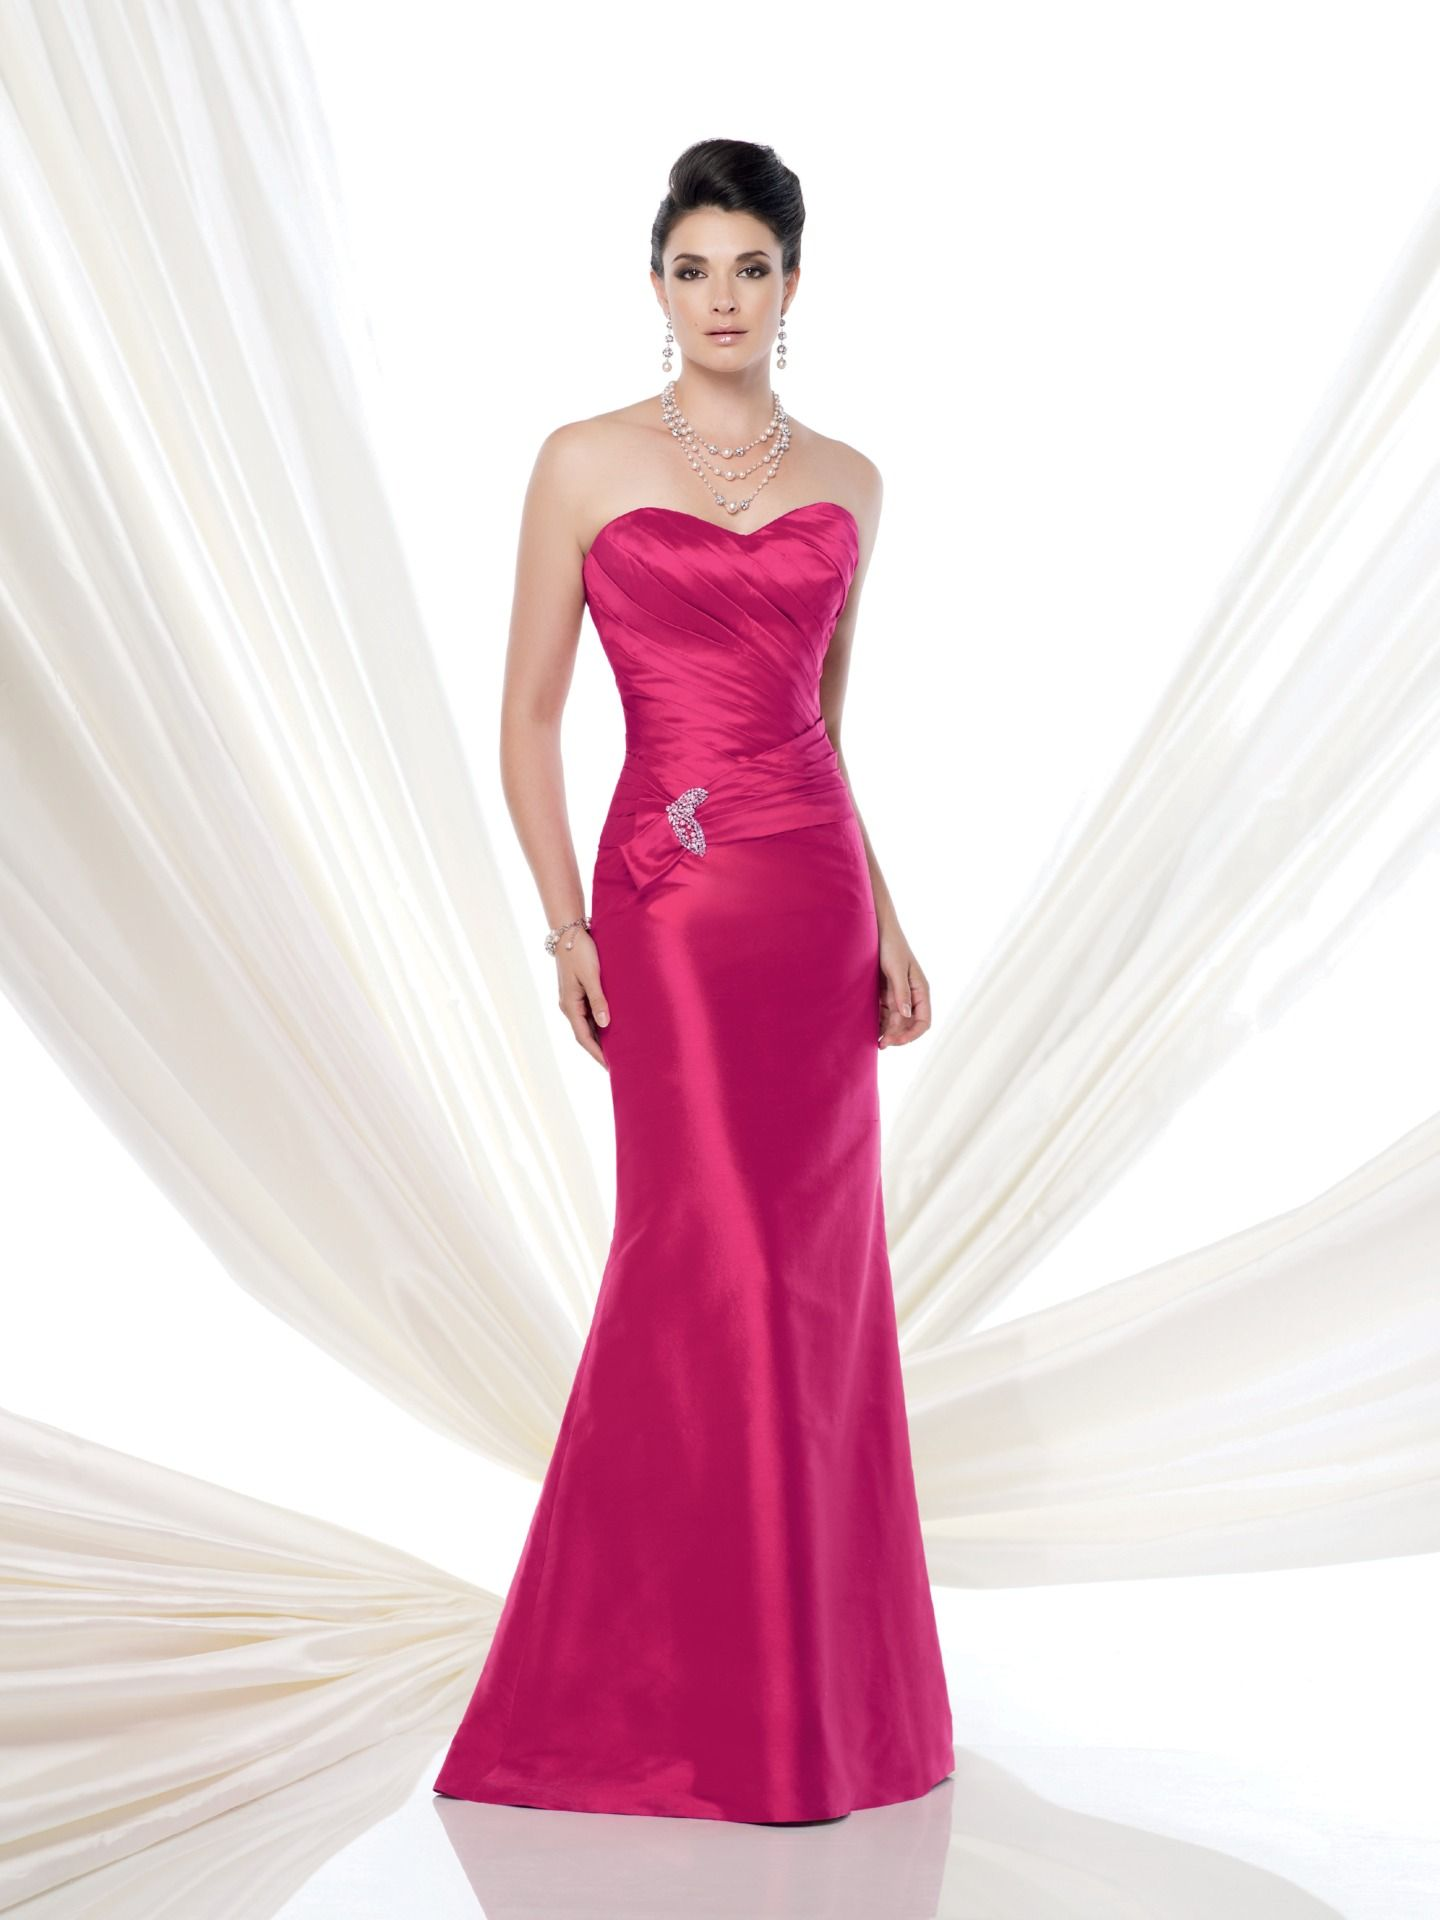 Dress by Ivonne D Style 115D82. Available at WhatchamaCallit ...